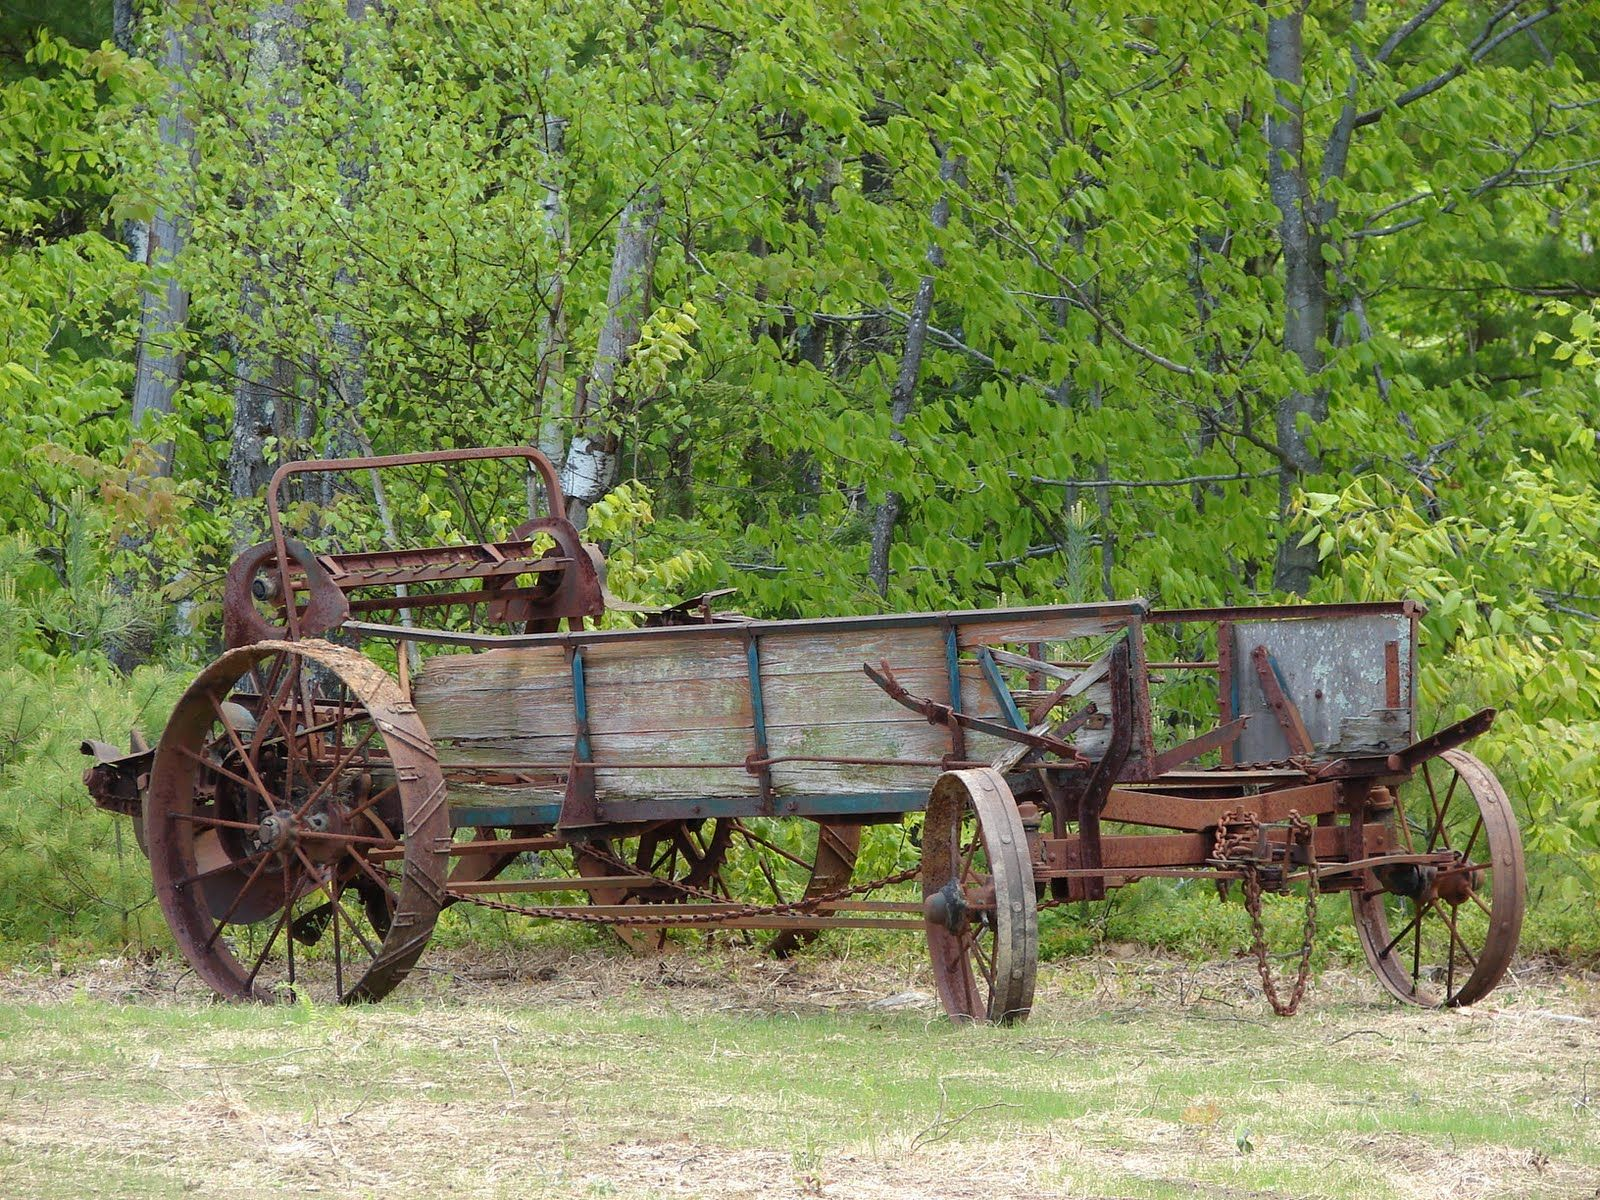 Vintage Farms Tractors For Sales : Dh s love of old farm implements horse drawn farming